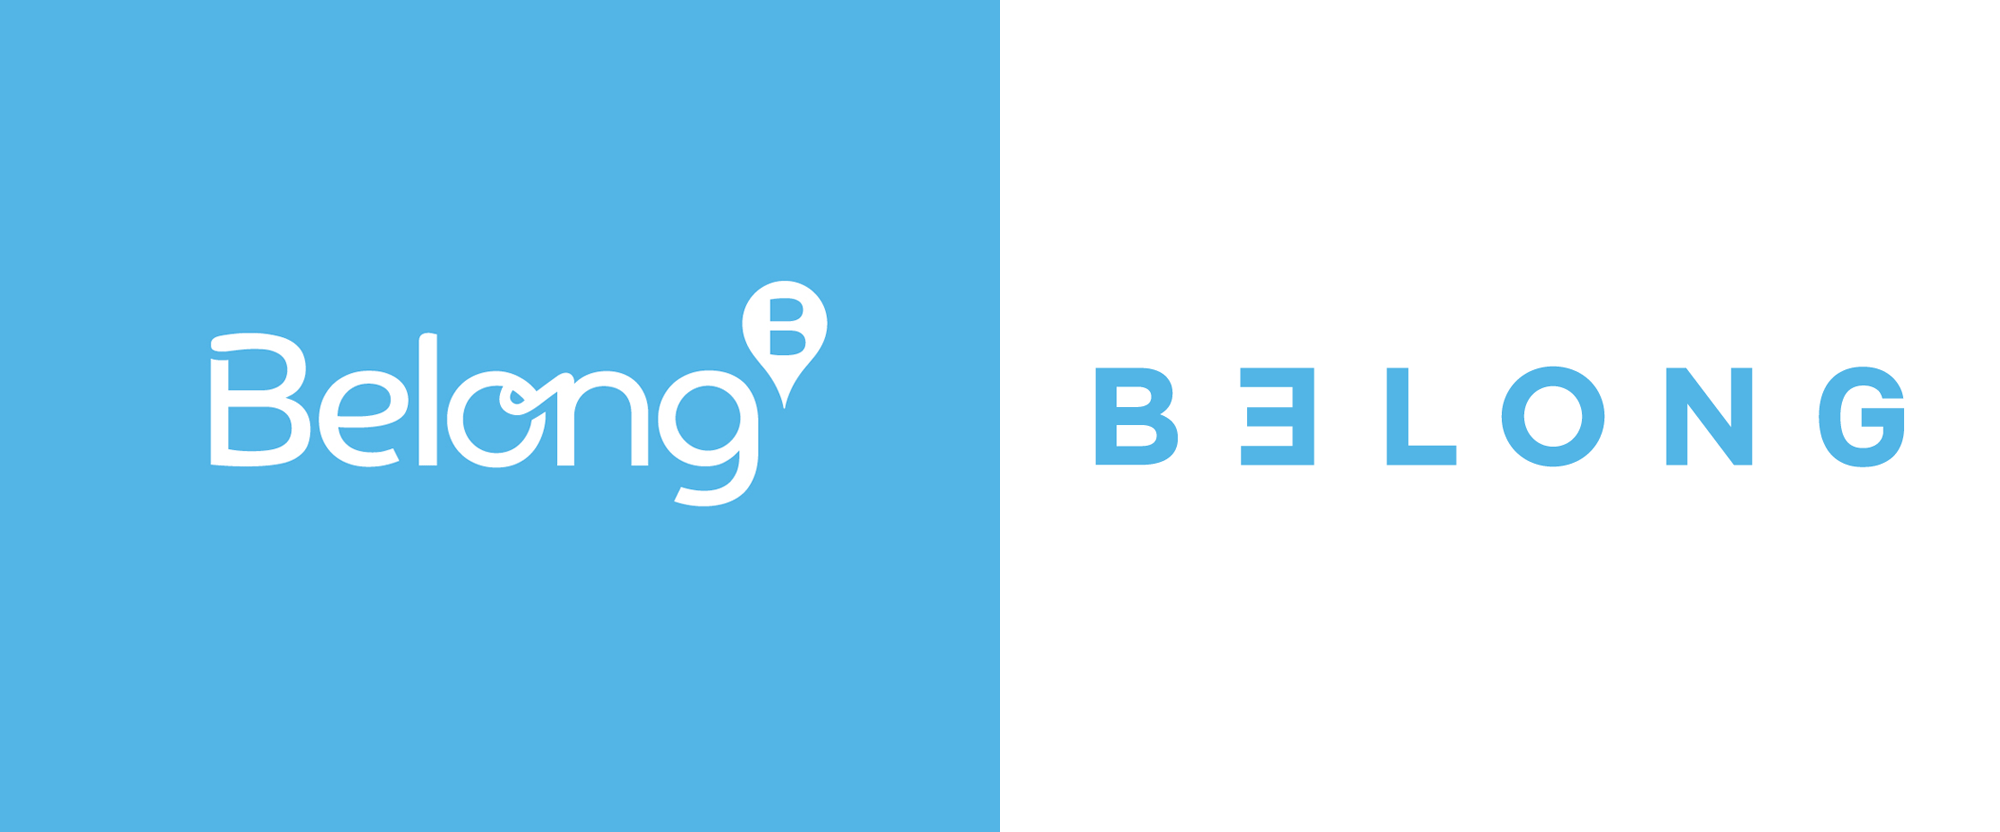 New Logo for Belong by Clemenger BBDO Melbourne